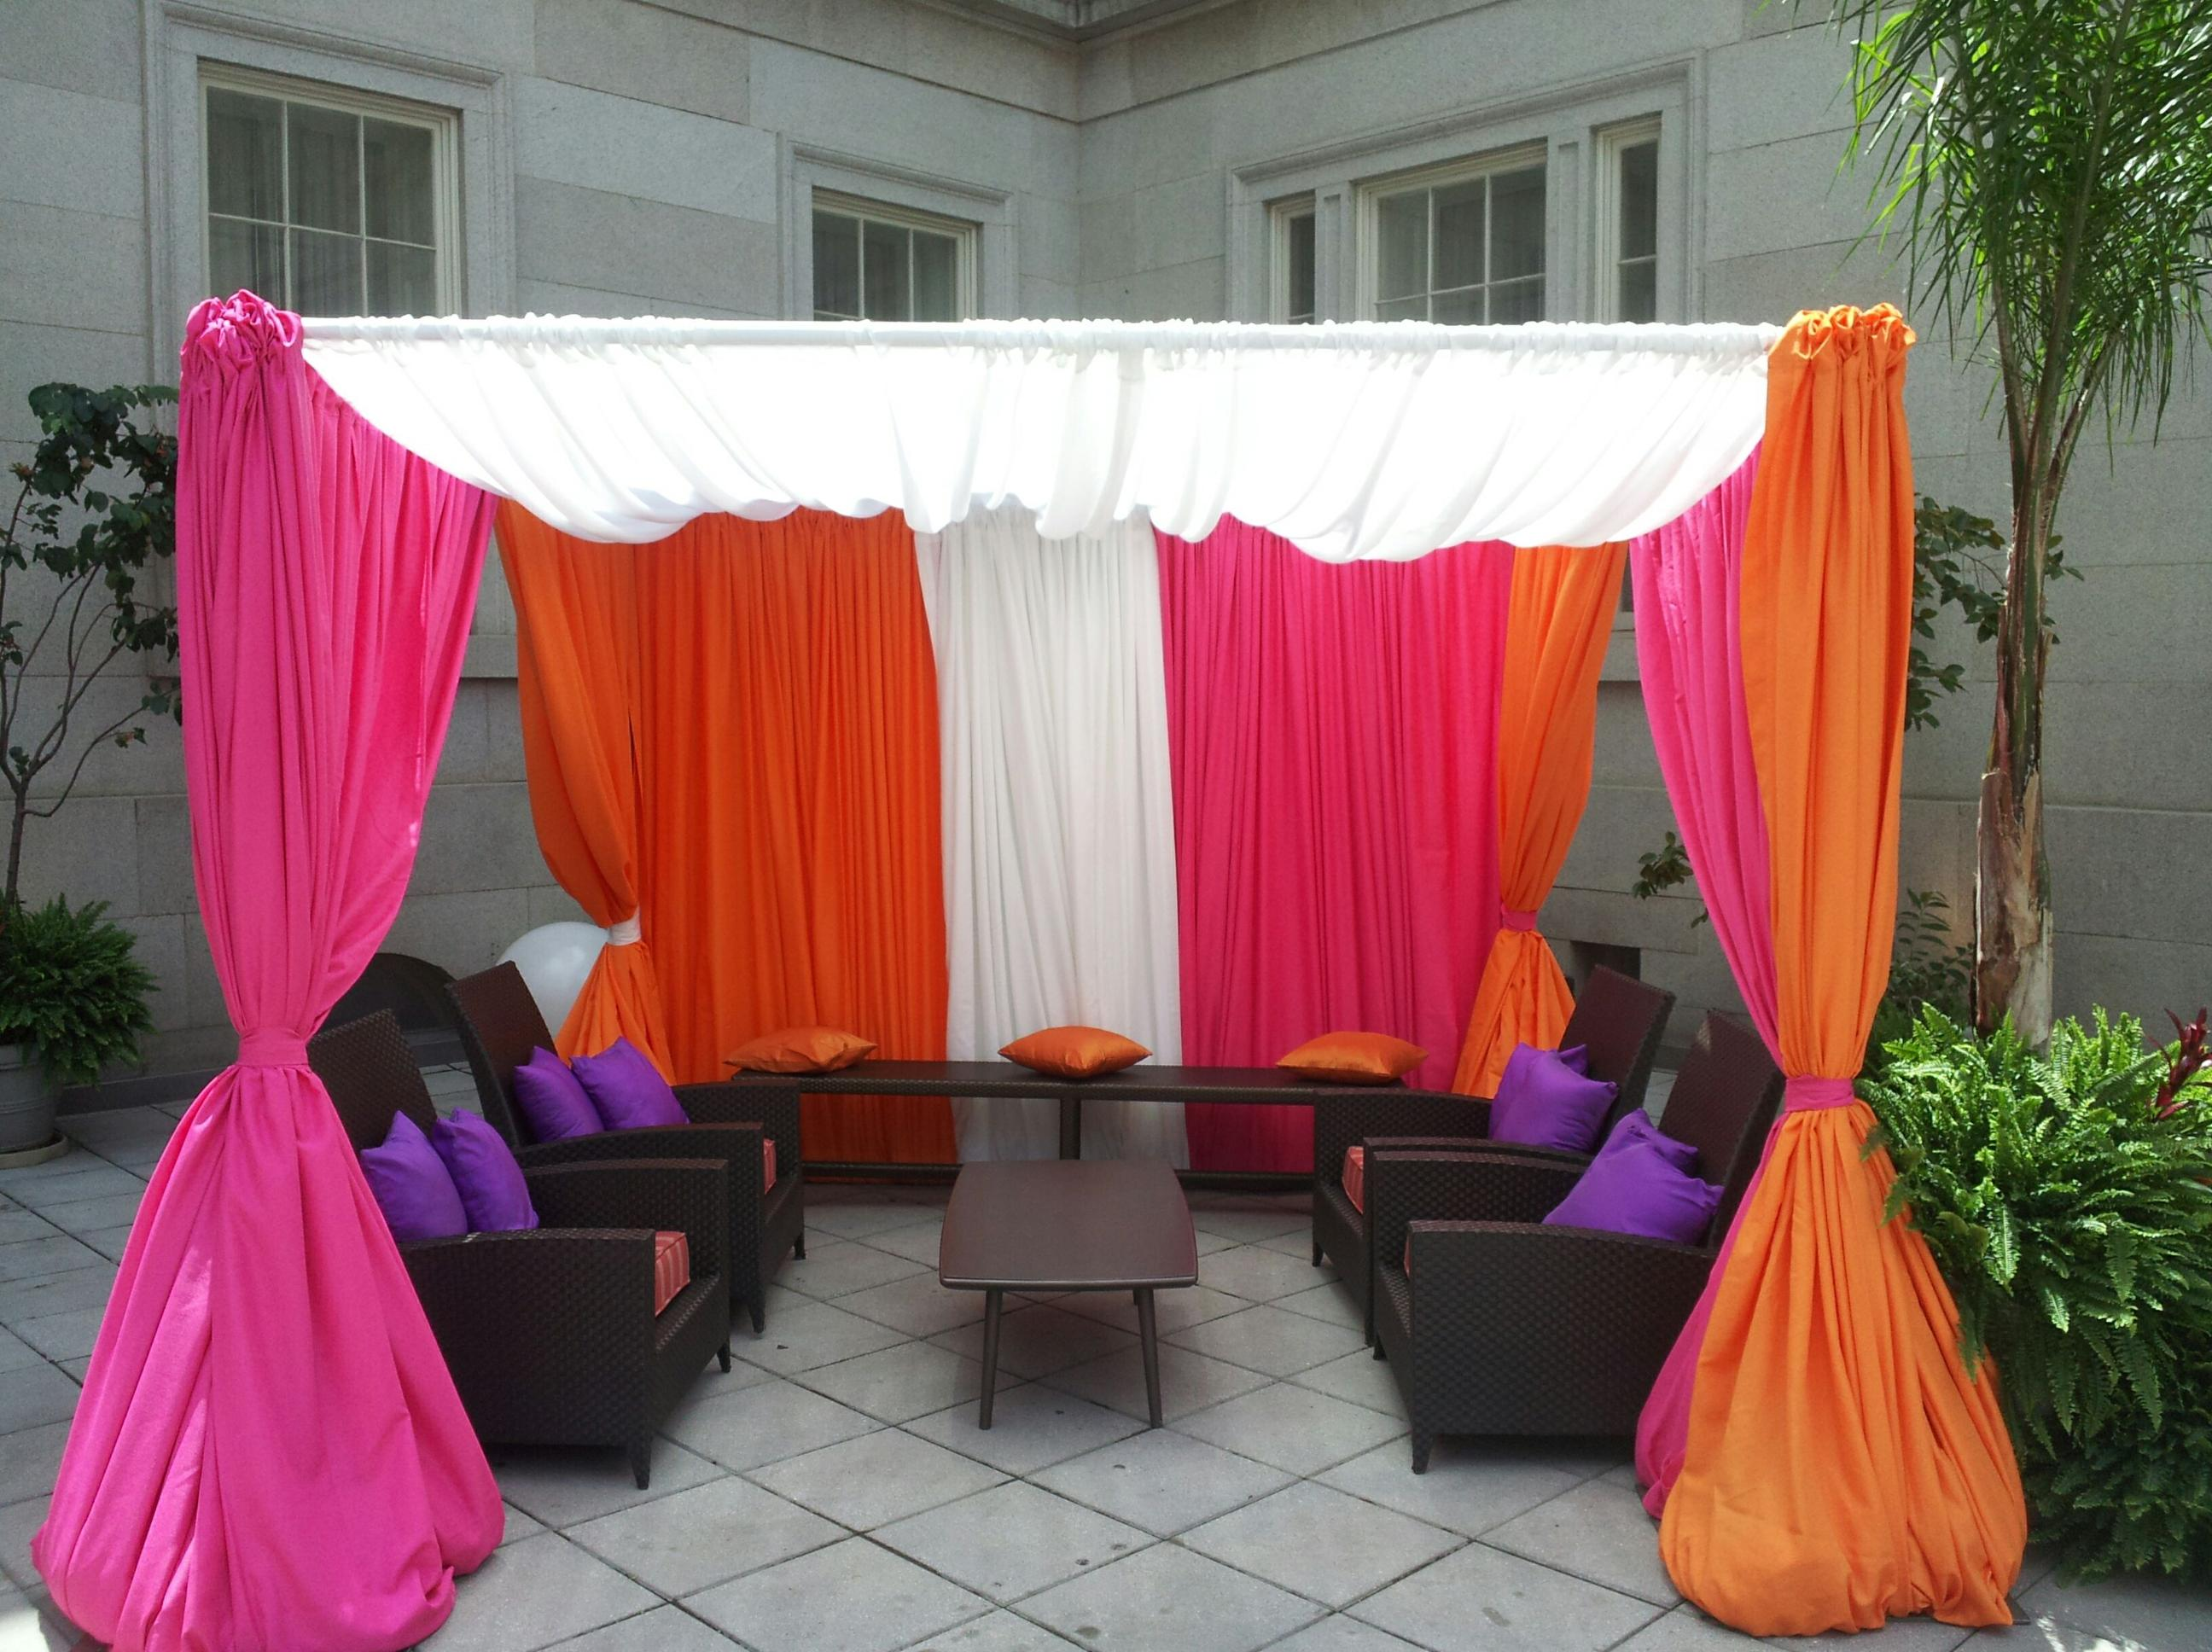 Canopy and Cabana Picture